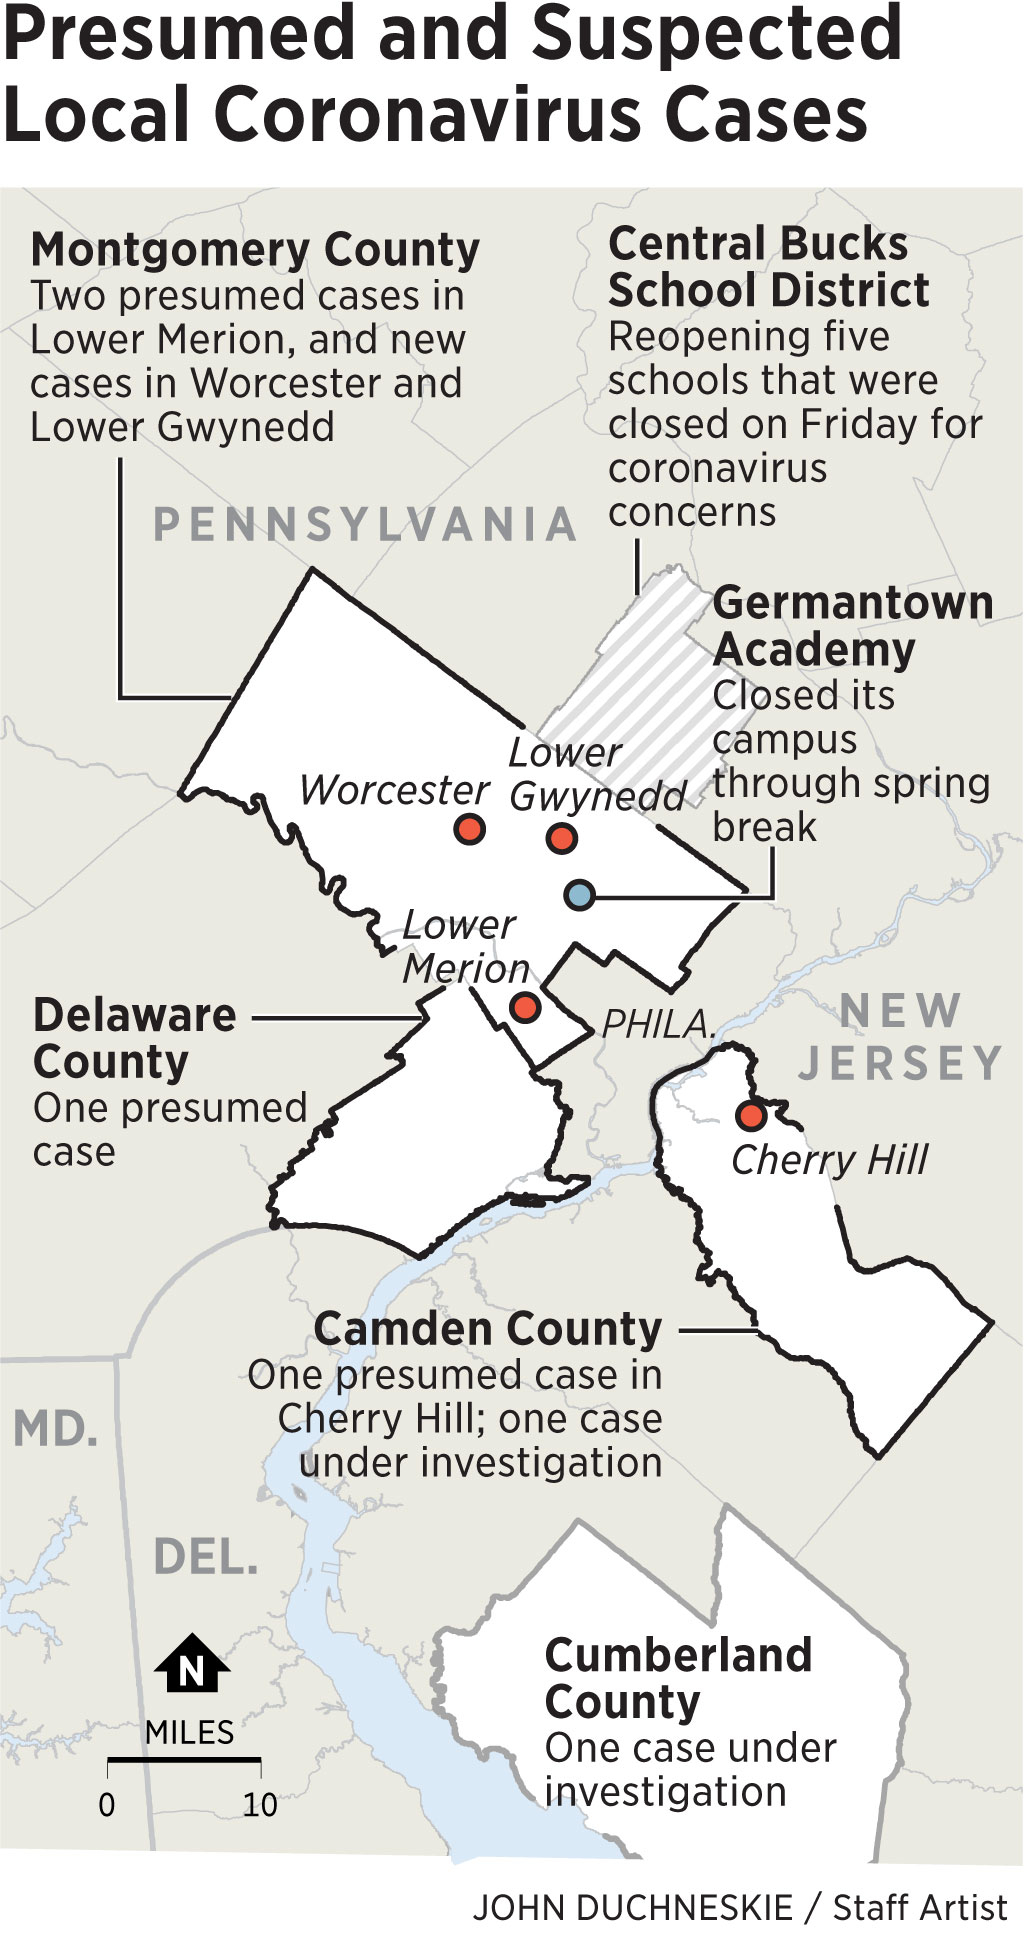 Philly Area Schools Grapple With Coronavirus, Closing With Cherry Hill District Spring Break